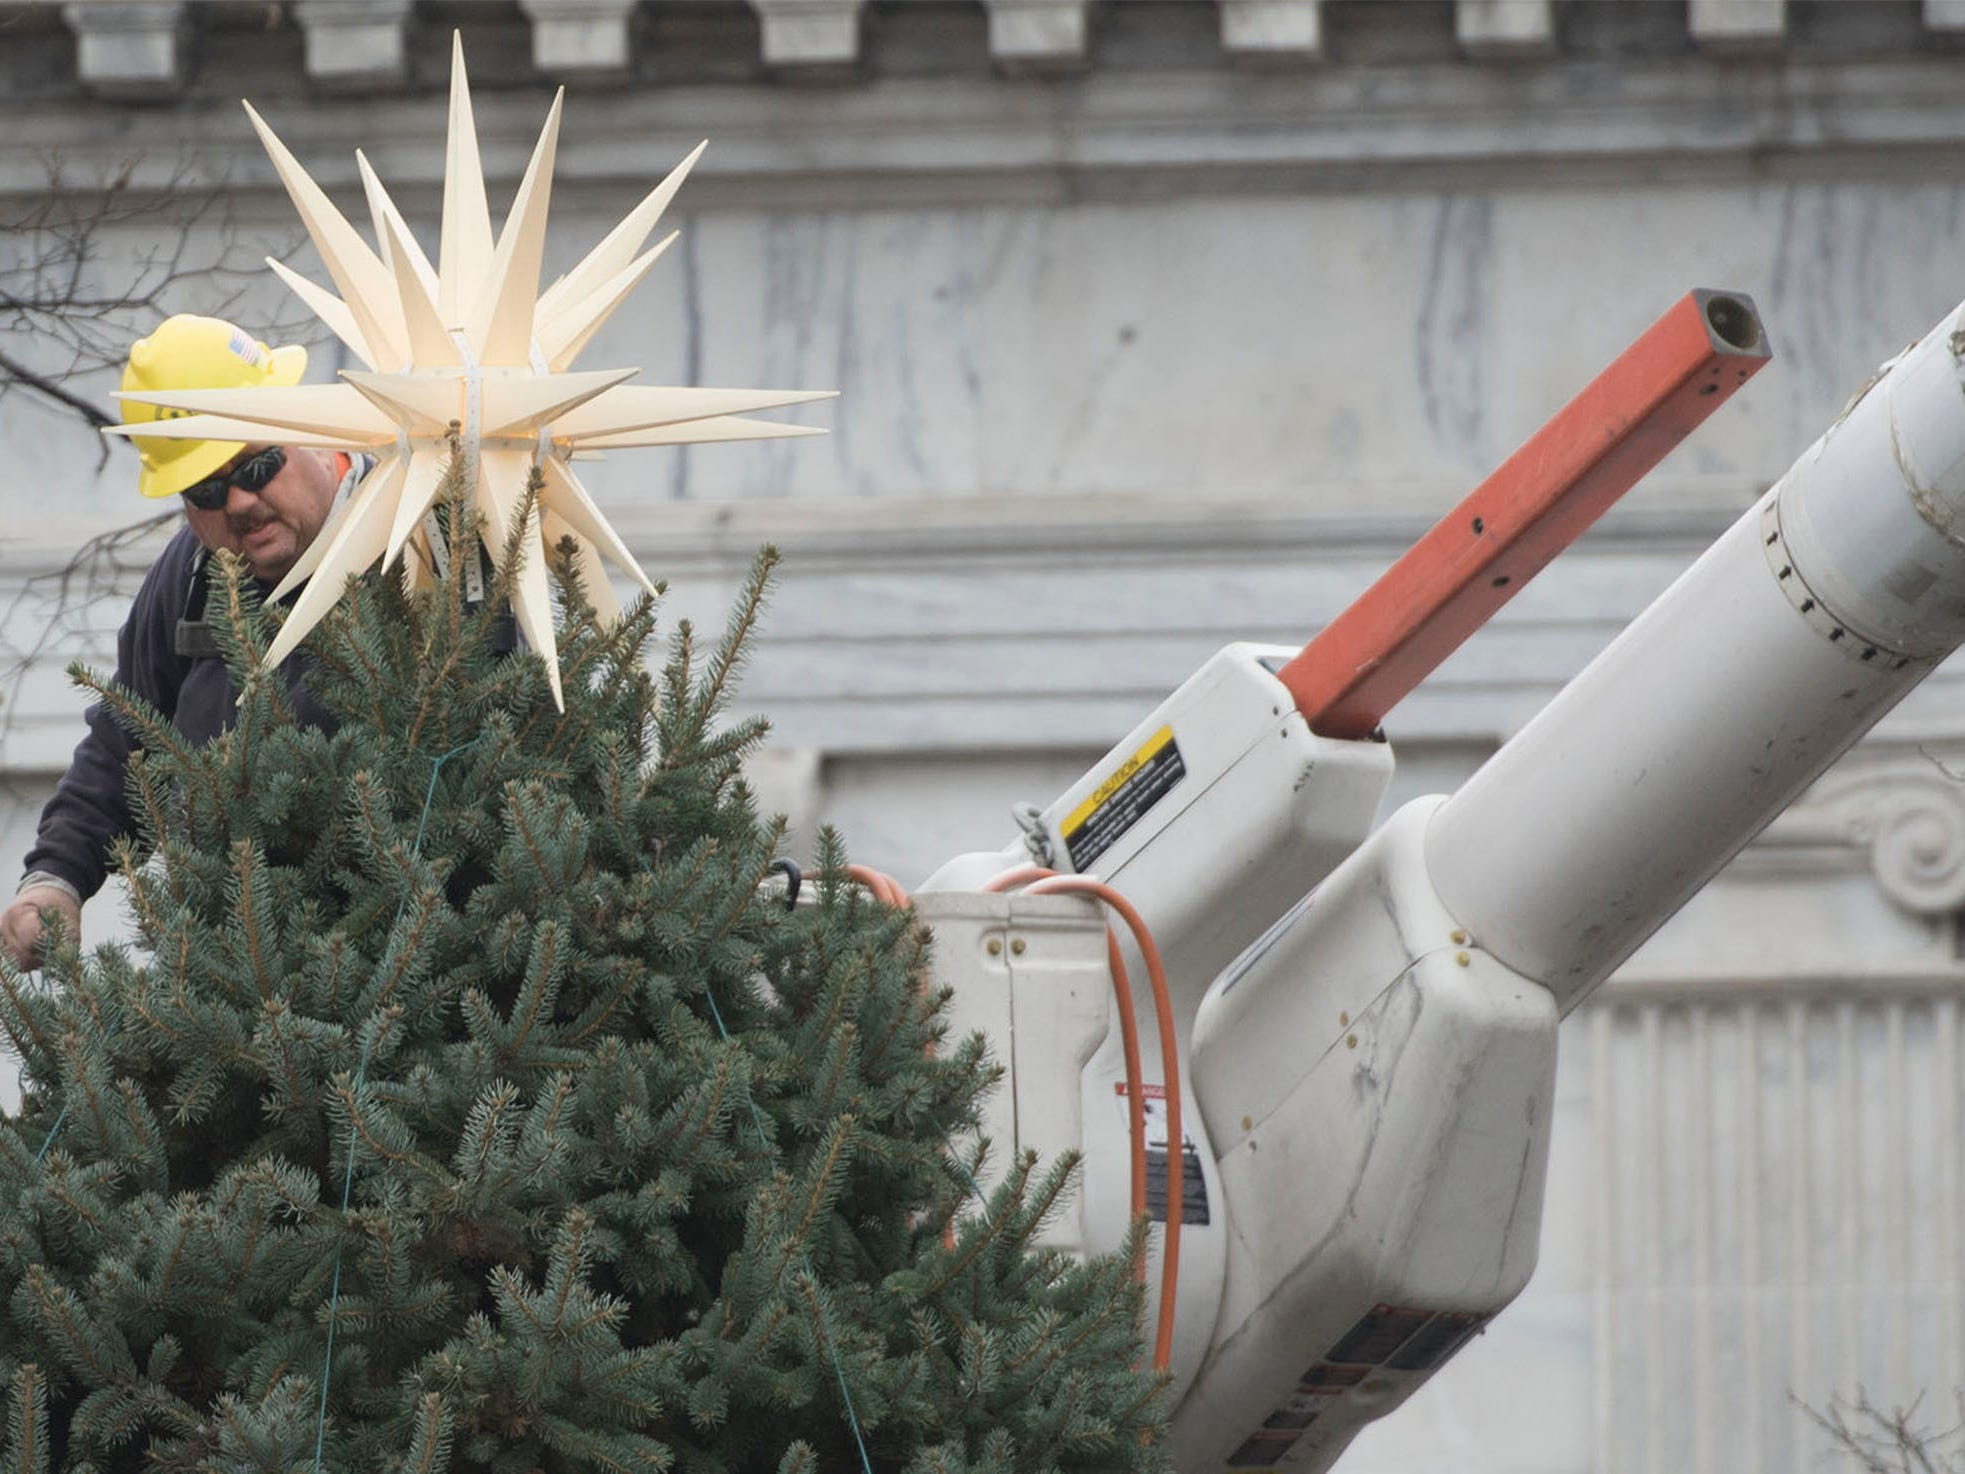 Borough of Chambersburg lineman Rob Roberts adjusts a star on top of the Christmas tree at Memorial Square on Tuesday, November 13, 2018. This year's tree was donated by Darlene Fowler of Fayetteville.